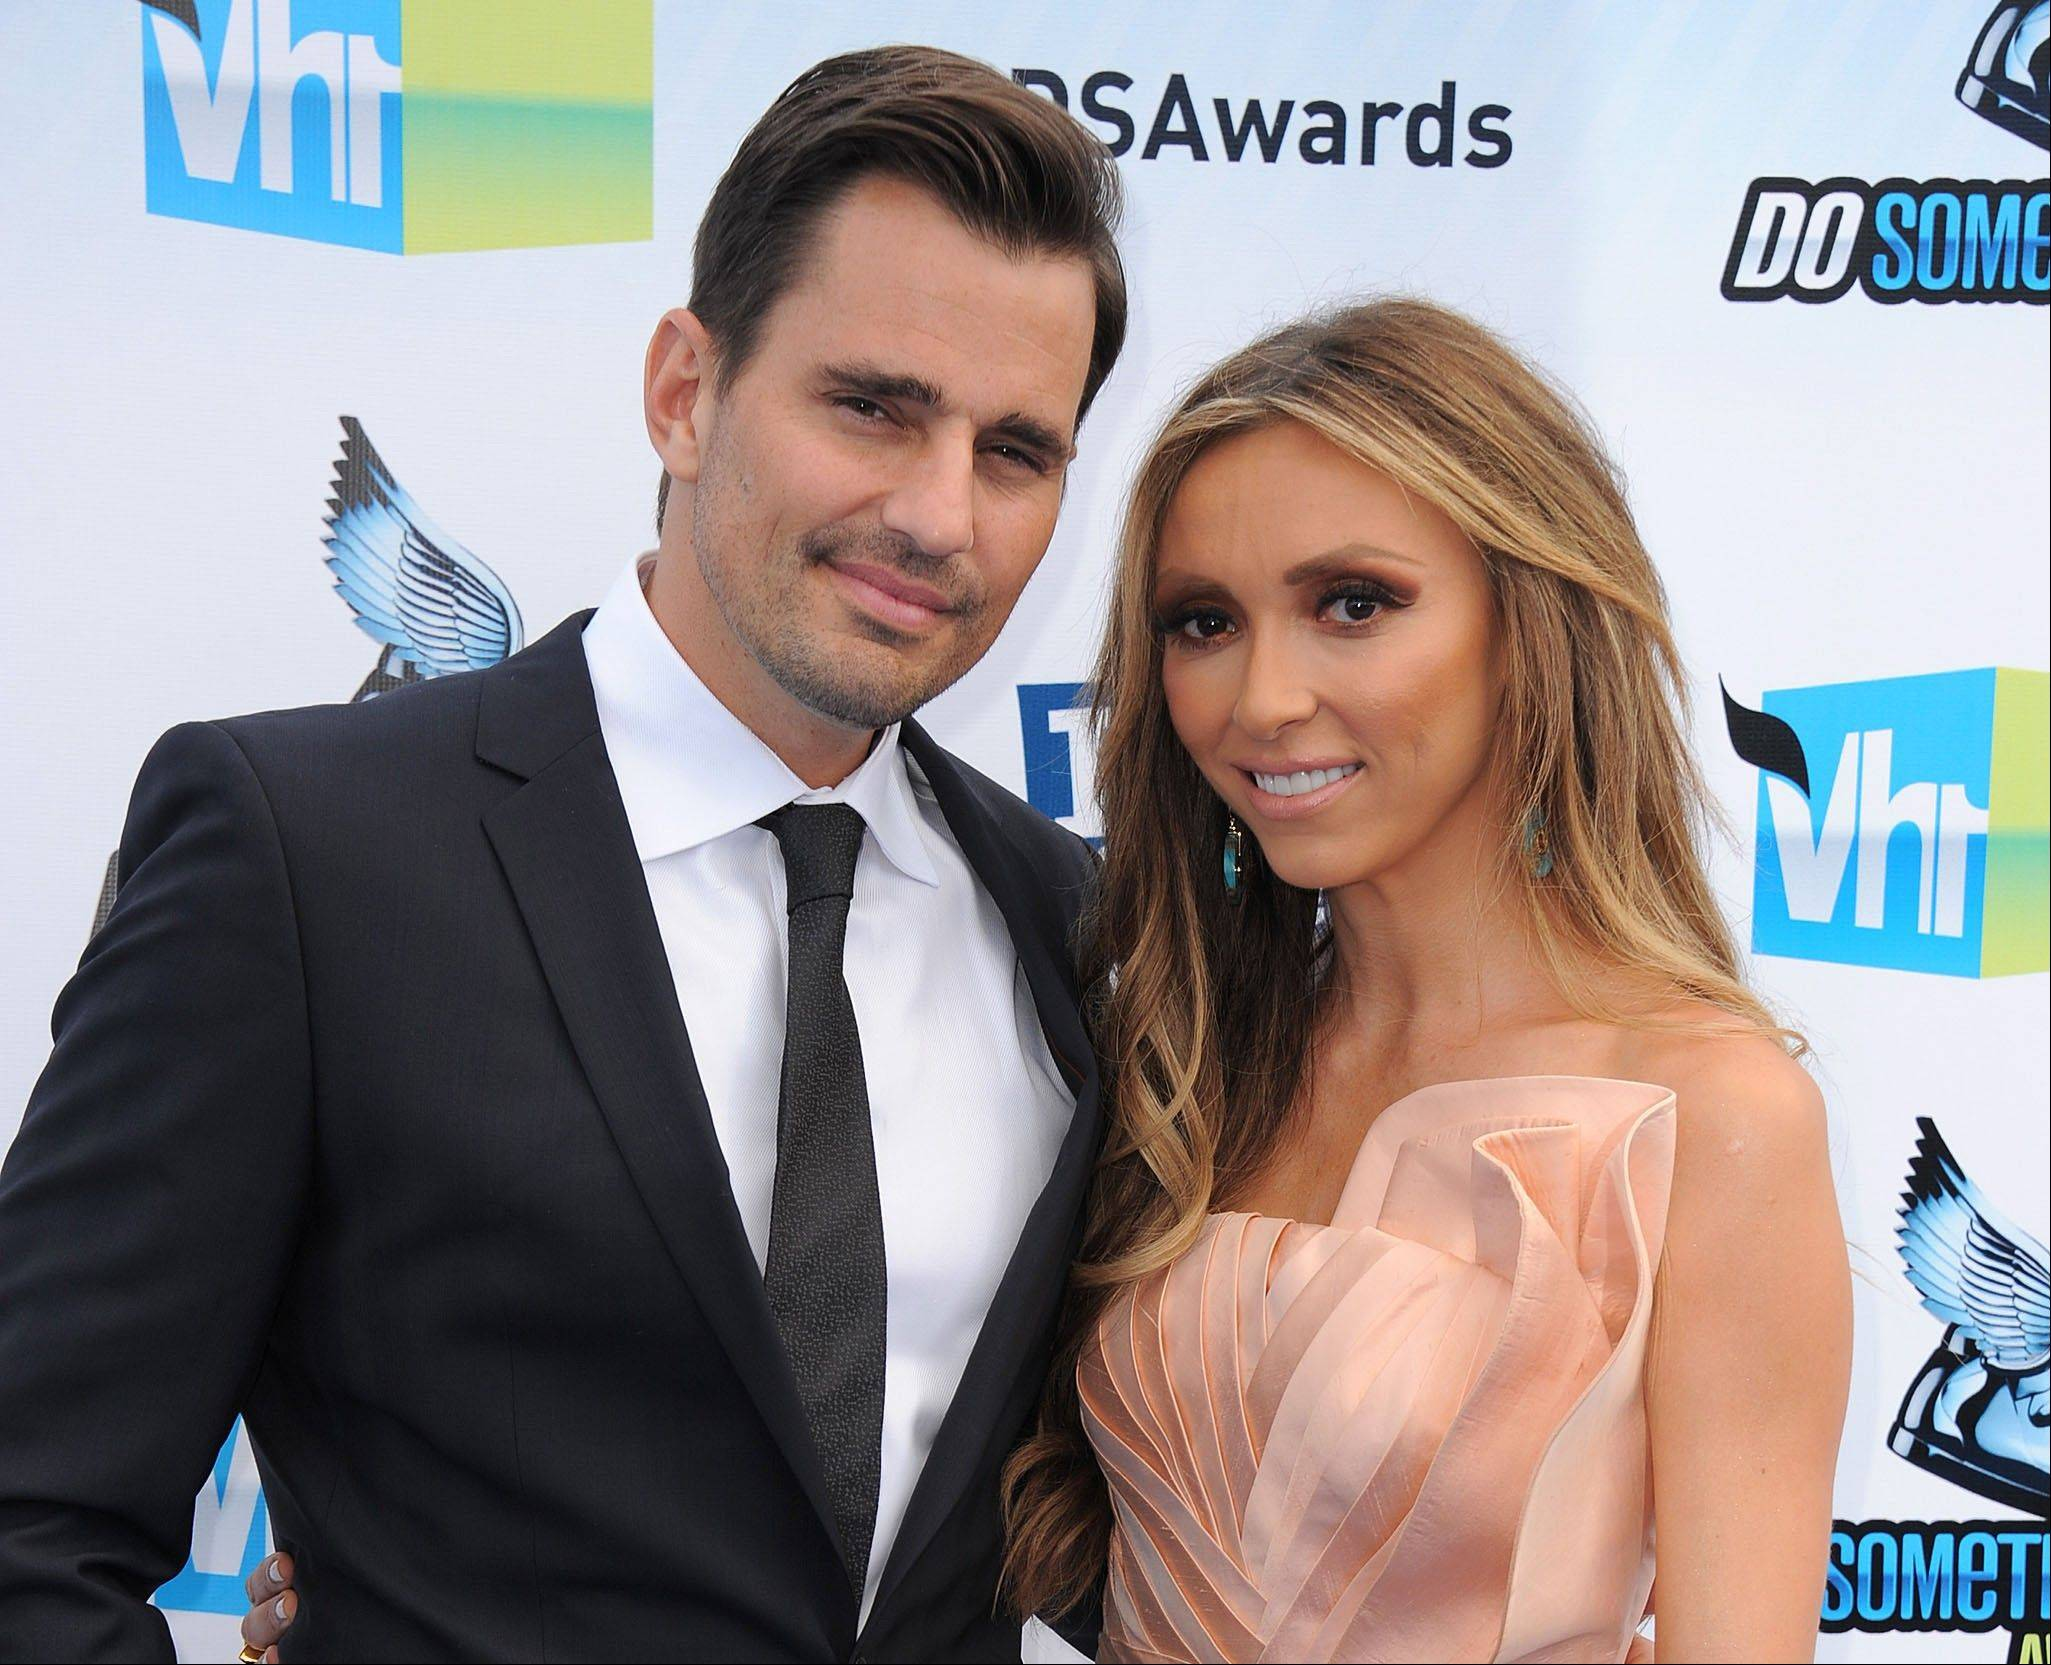 Bill and Giuliana Rancic have welcomed son Edward Duke to their family via a gestational surrogate.